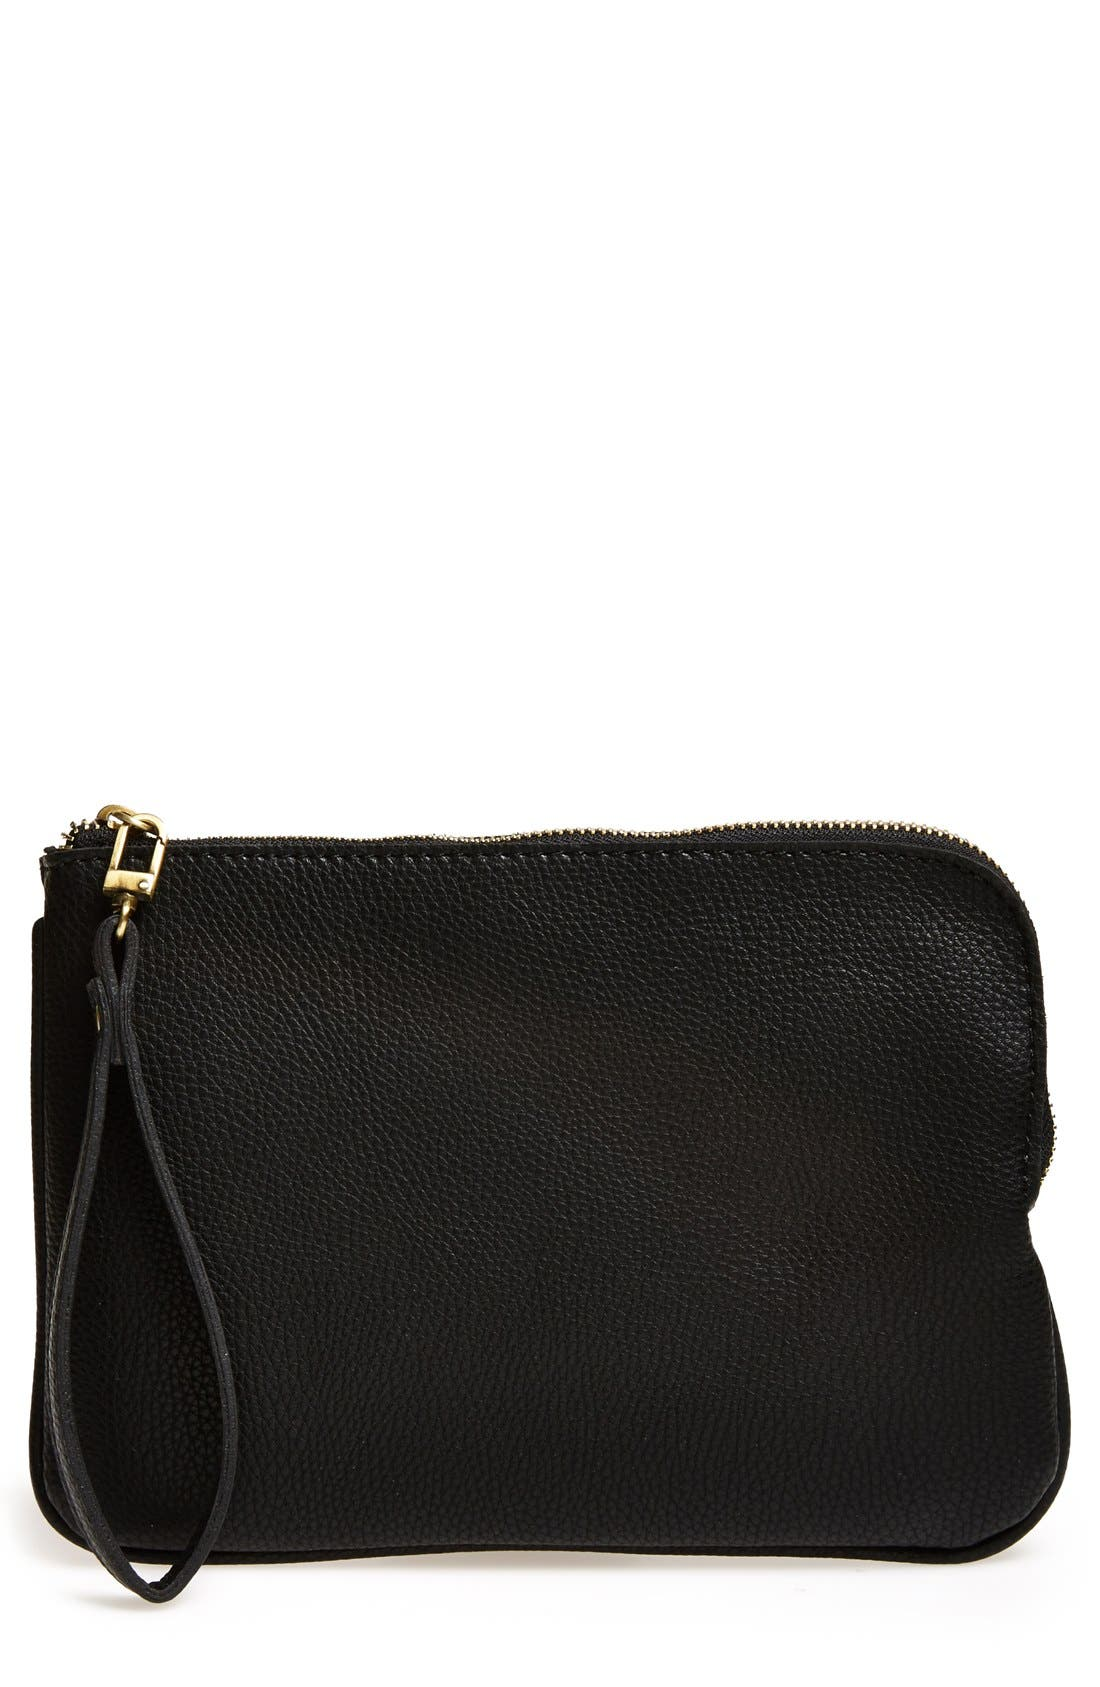 STREET LEVEL Faux Leather Wristlet, Main, color, 001